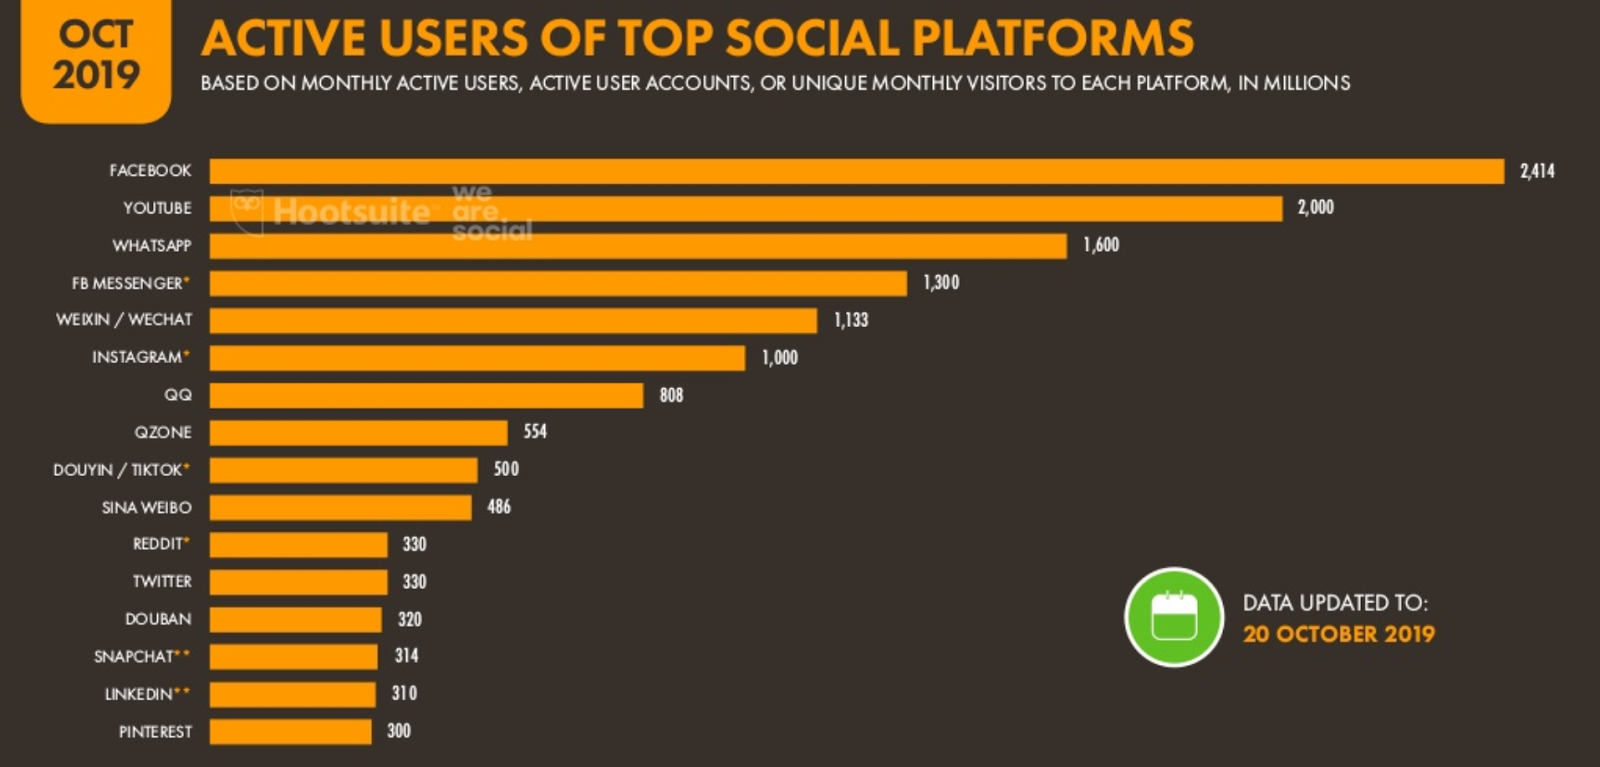 Active Users of Top Social Platforms